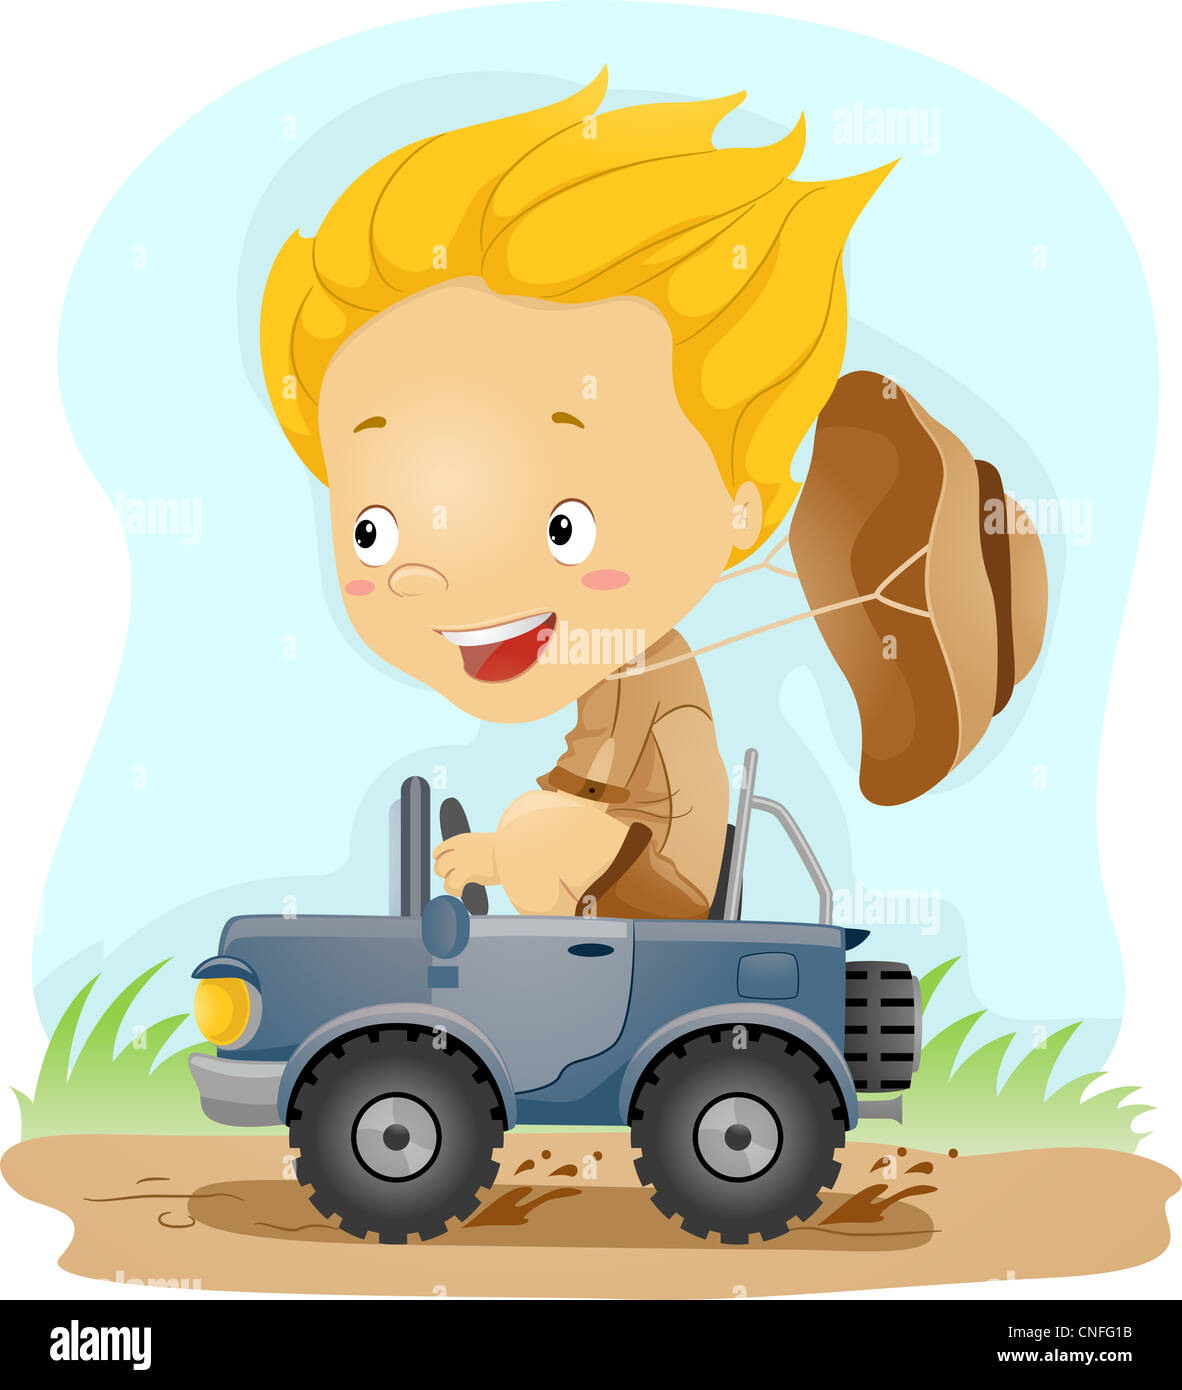 Illustration of a Kid Driving a Small Jeep - Stock Image